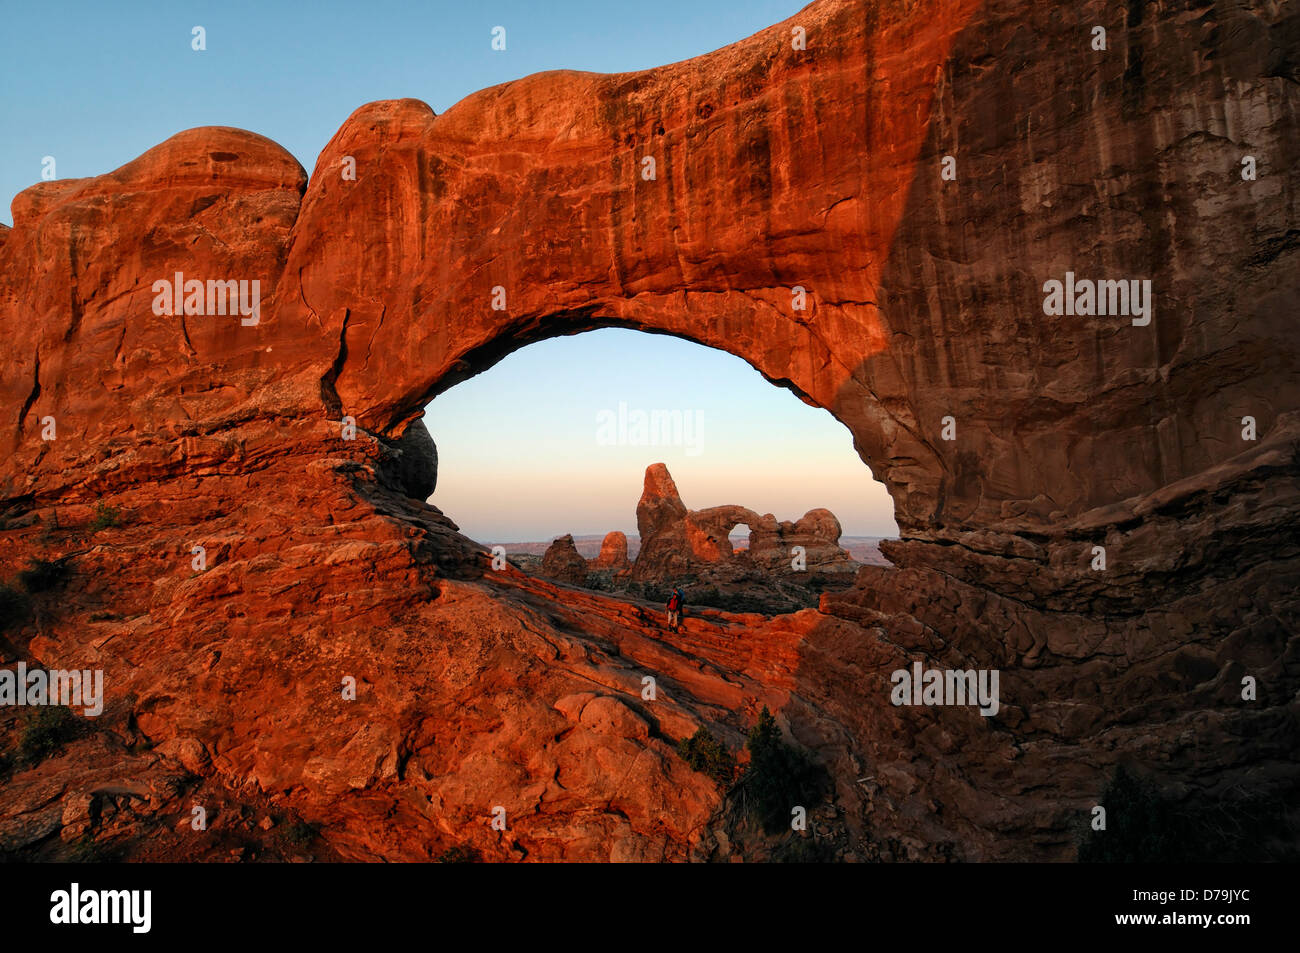 Turret Arch Through North Window Royalty Free Stock Photo - Image ...